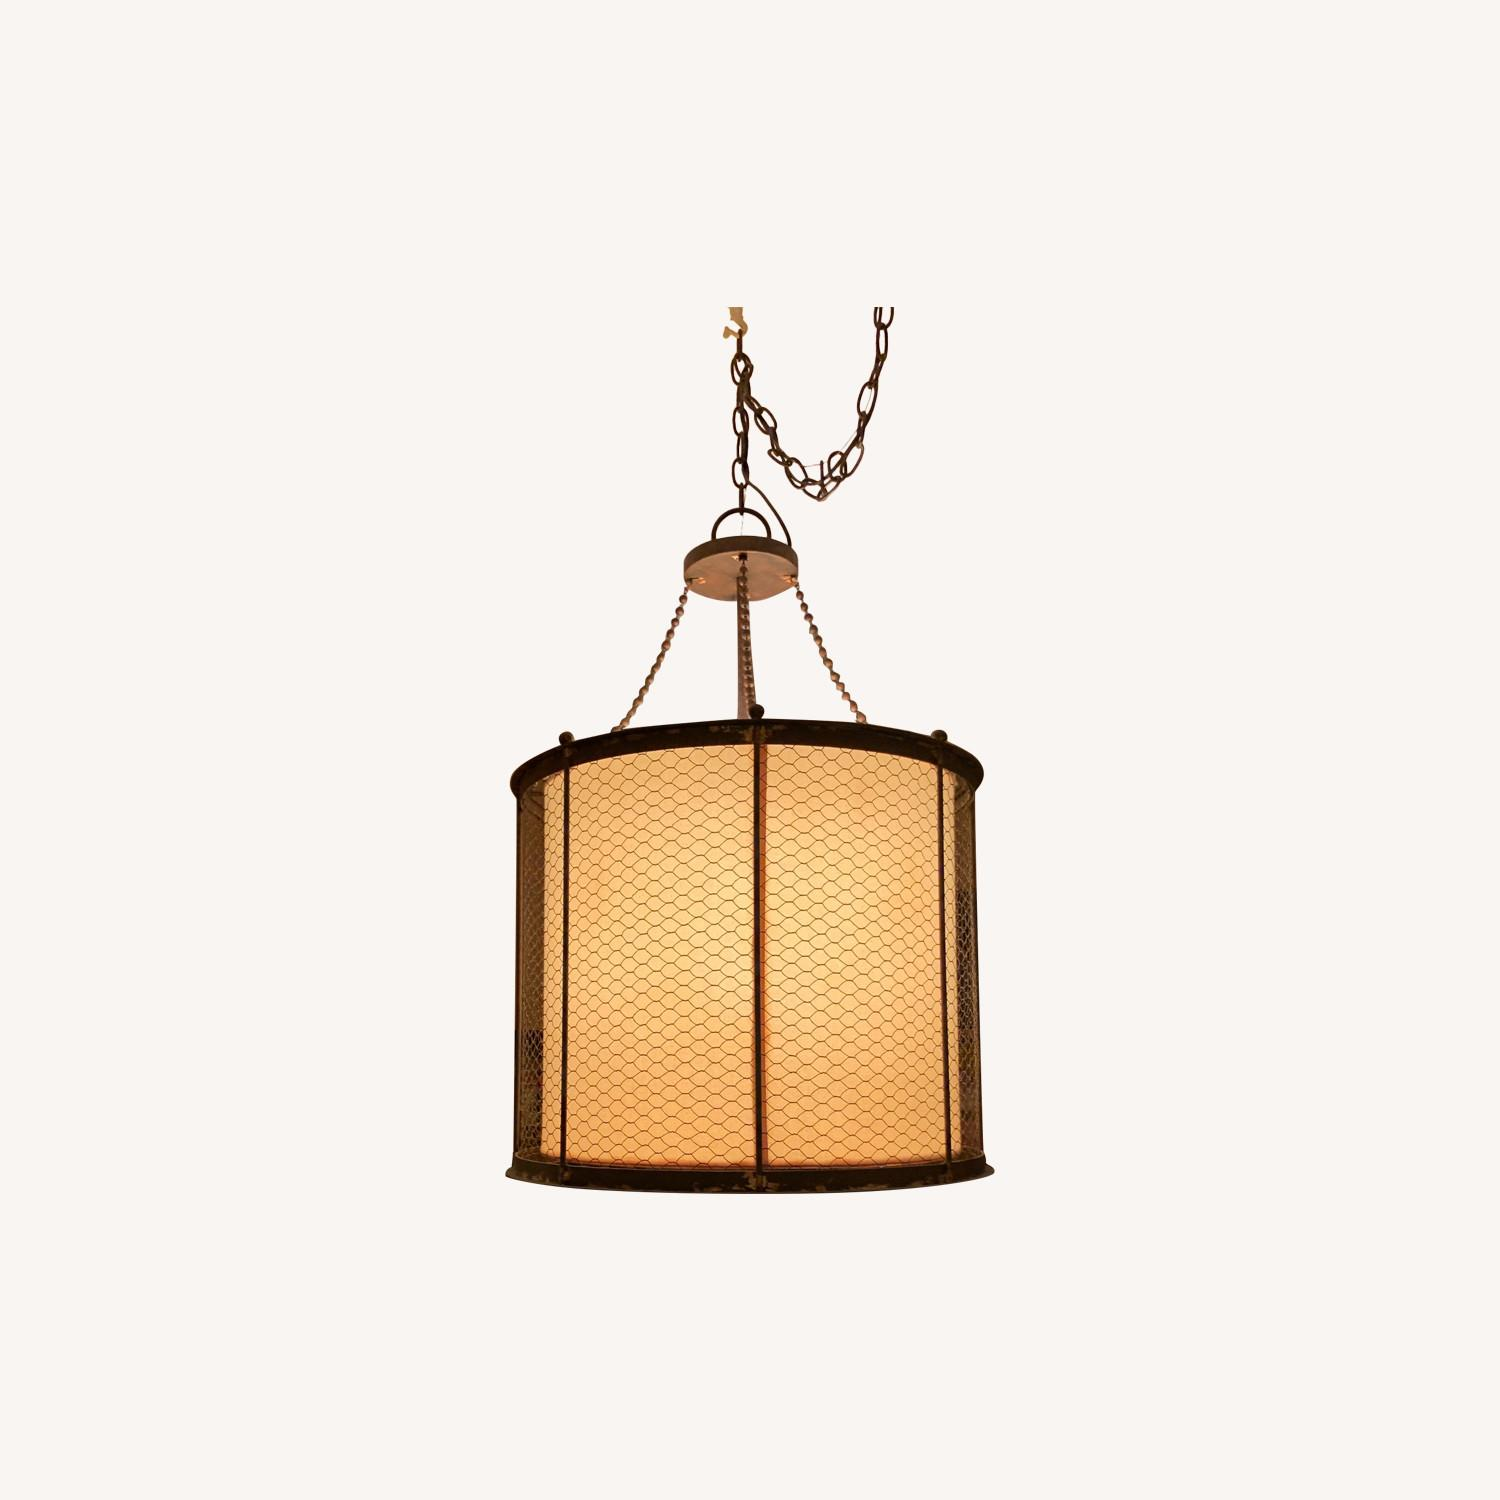 Ethan Allen Metal & Linen Barrel Ceiling Light - image-0